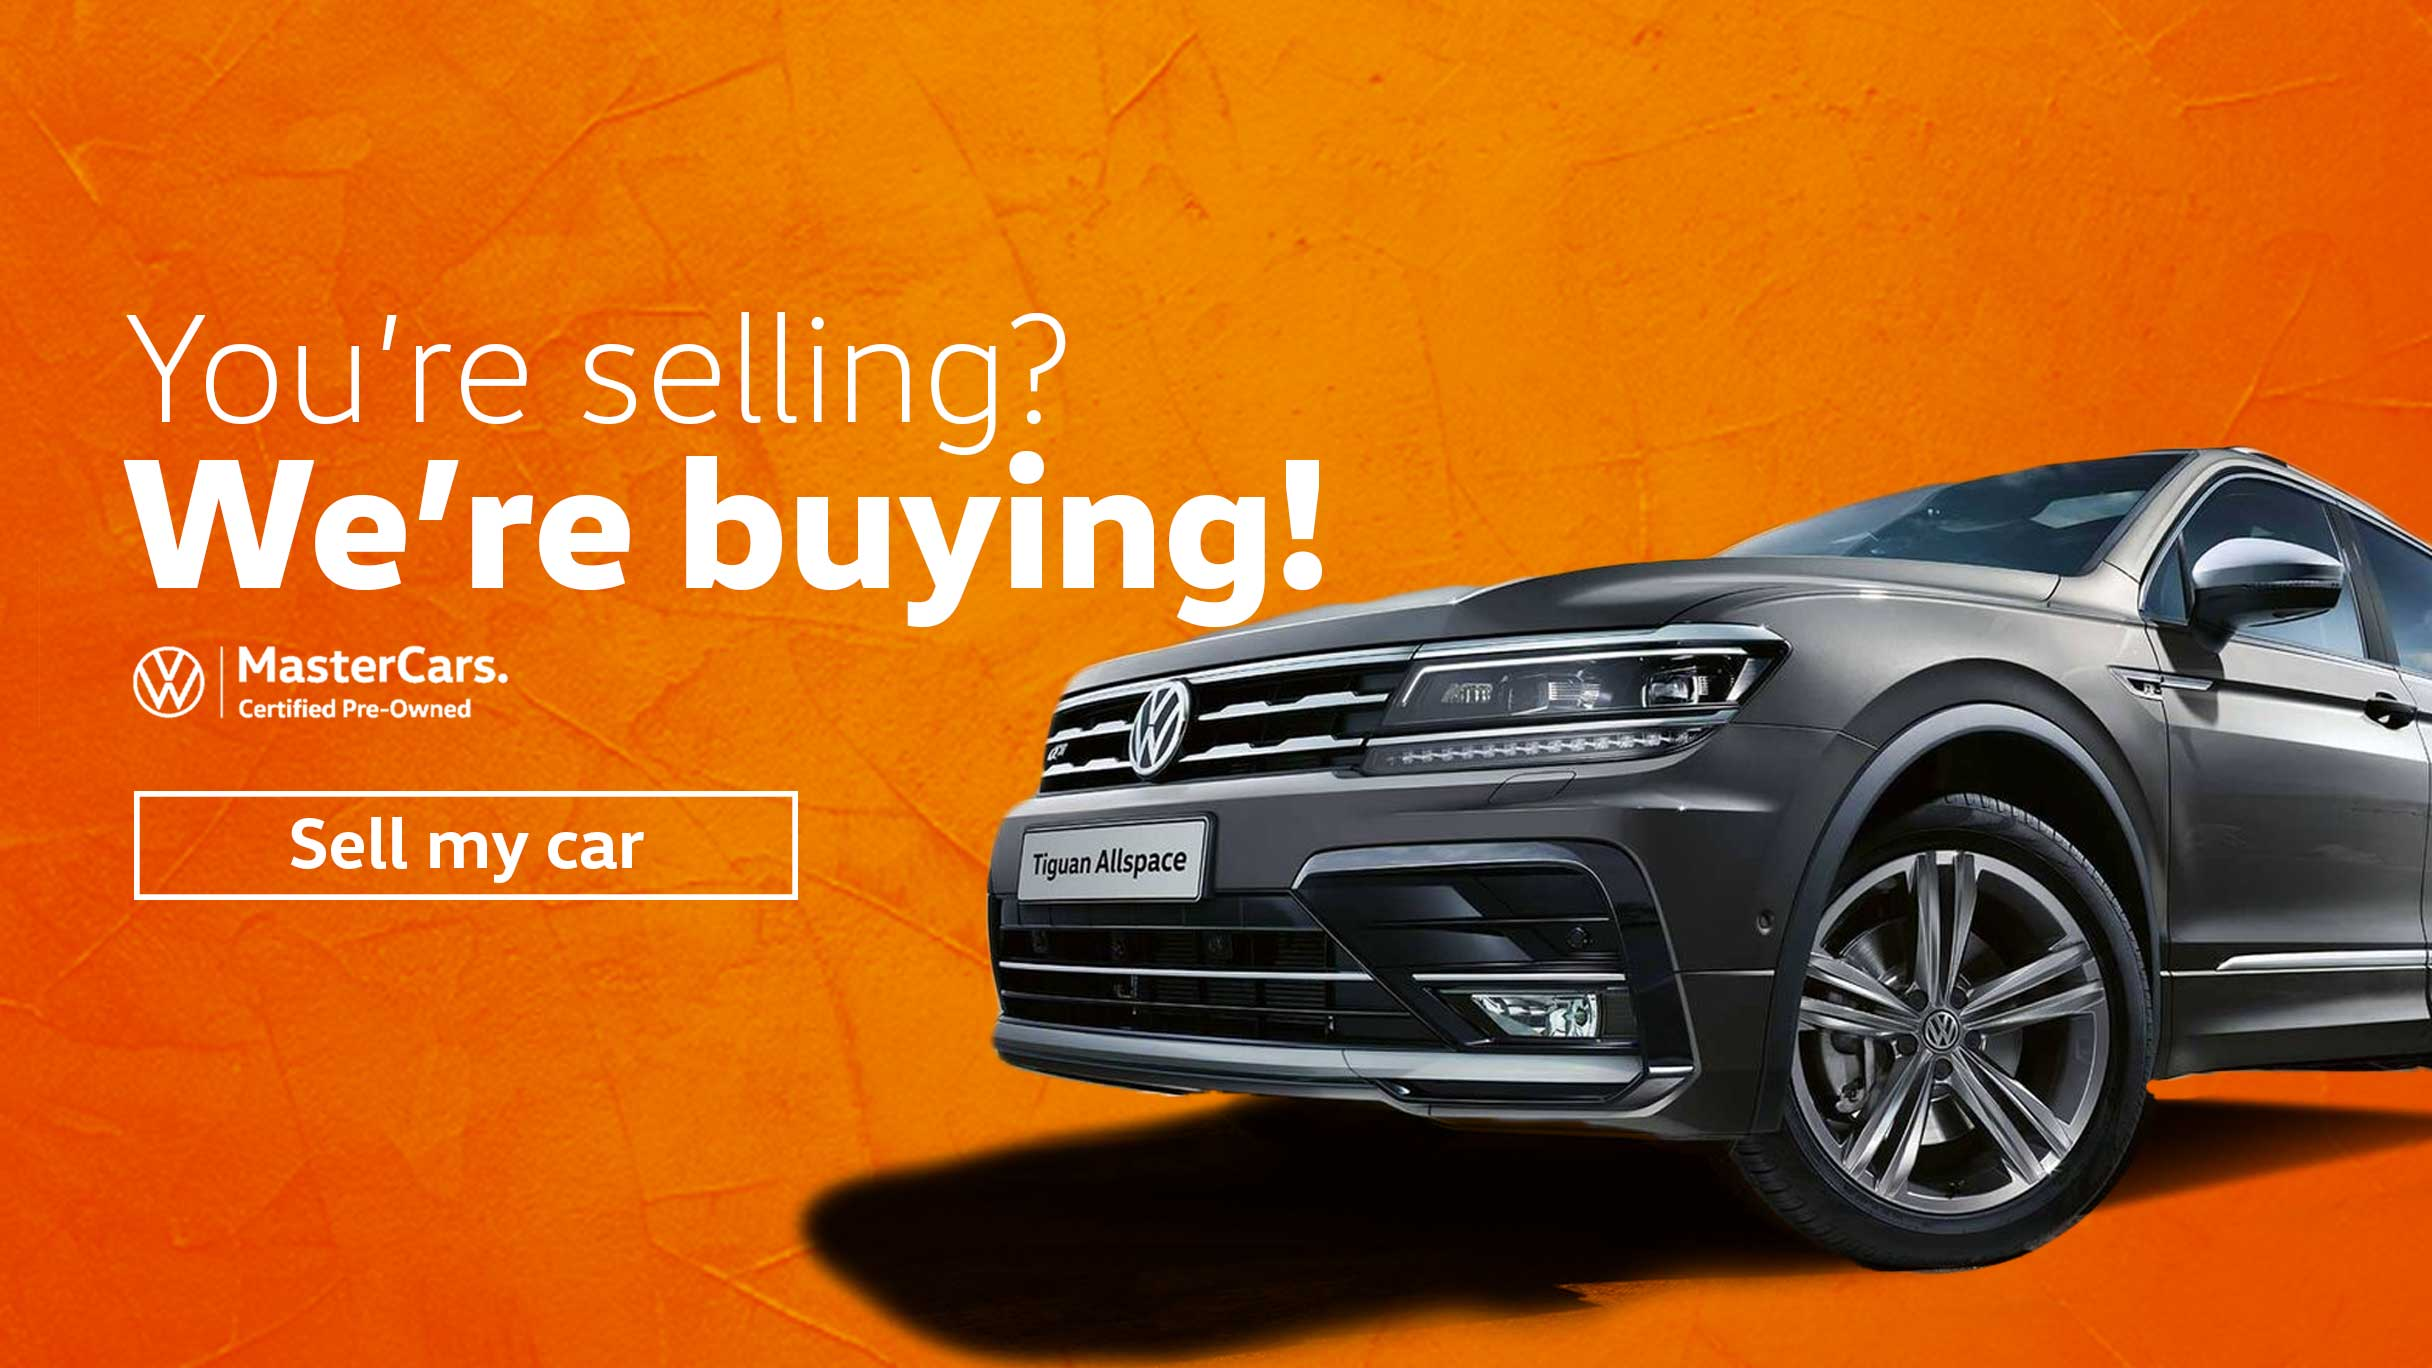 Barons Bruma buys cars -sell you car to us